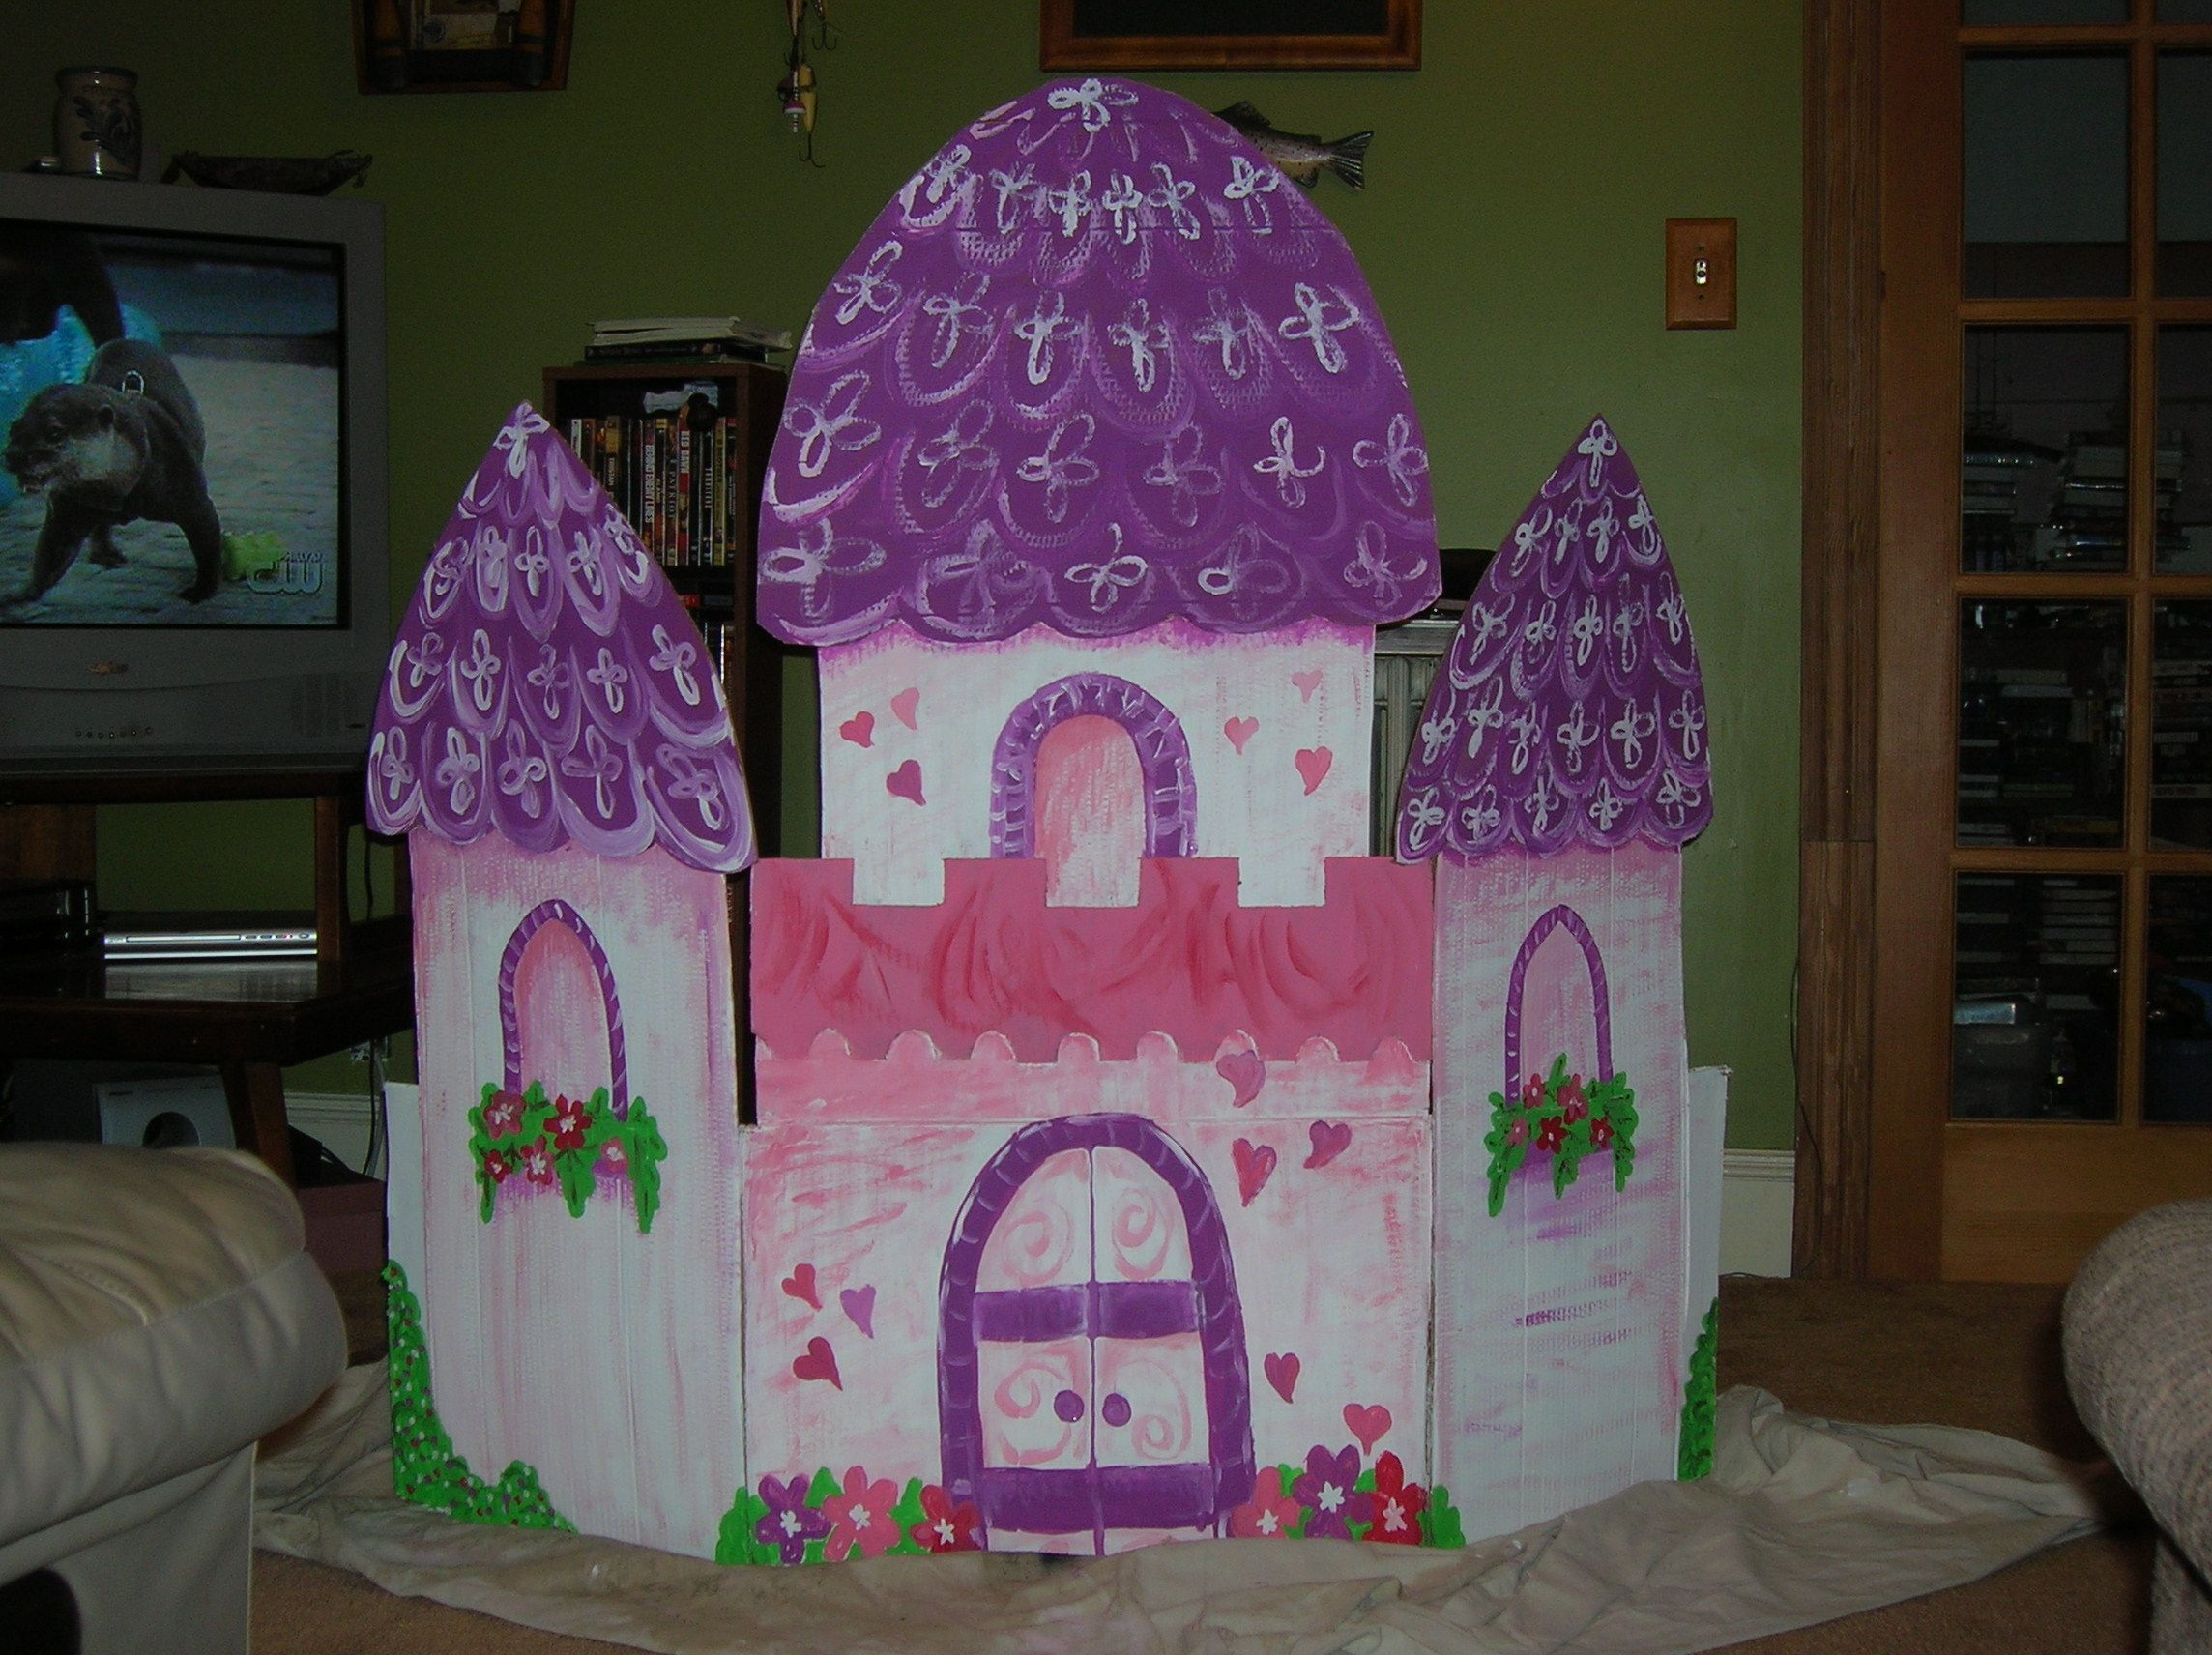 princess castle backdrop for photos made from cardboard | neat